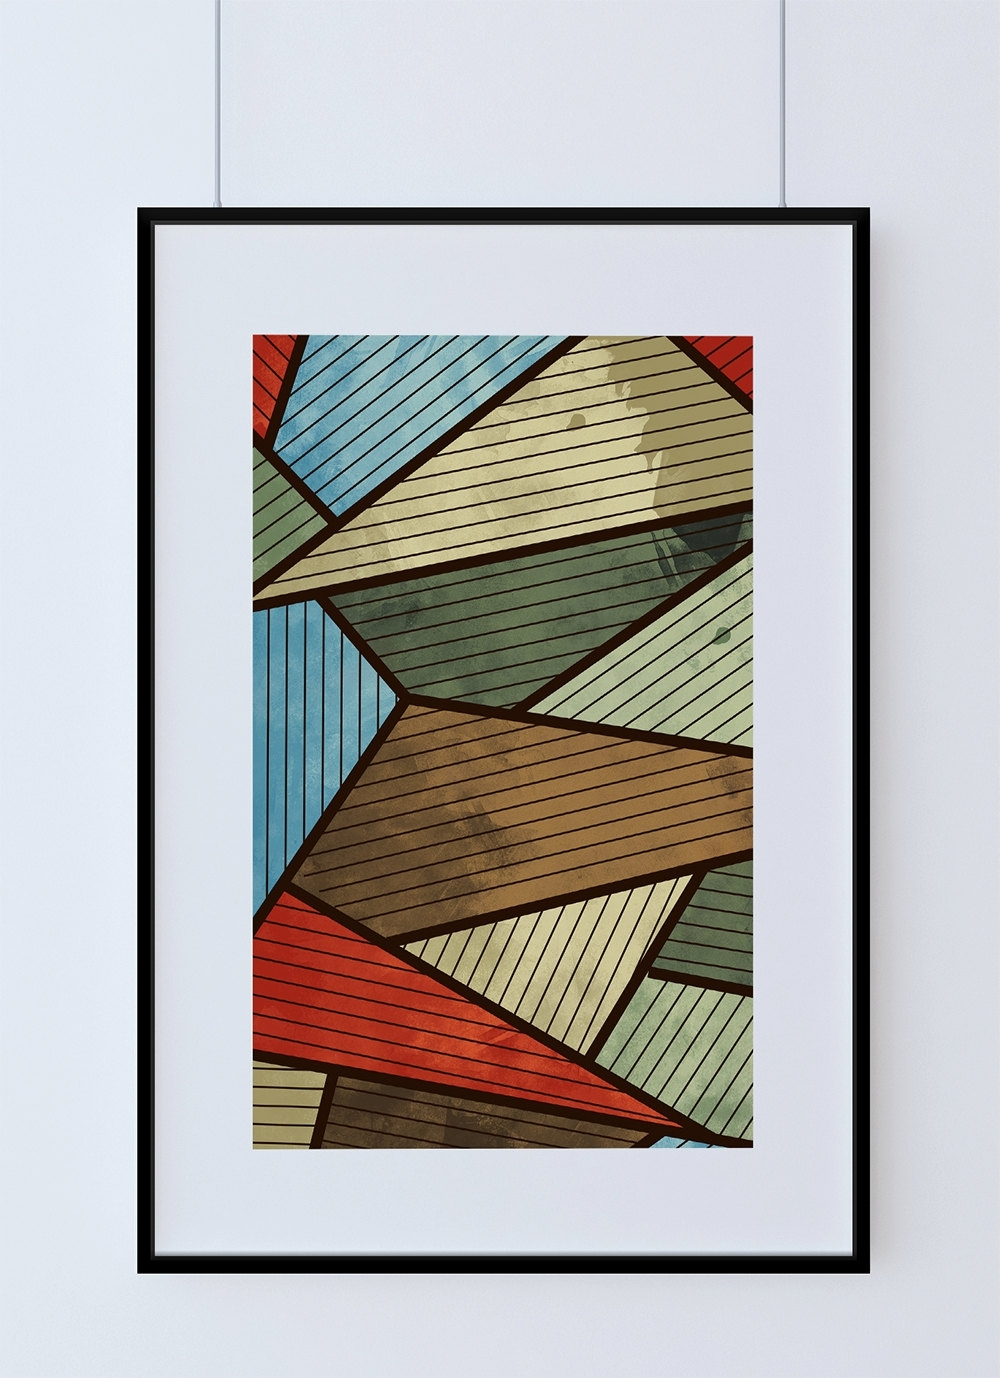 Mid Century Modern Print Abstract Art Print Poster Giclee On Cotton Regarding Most Recent Mid Century Modern Wall Art (View 16 of 20)